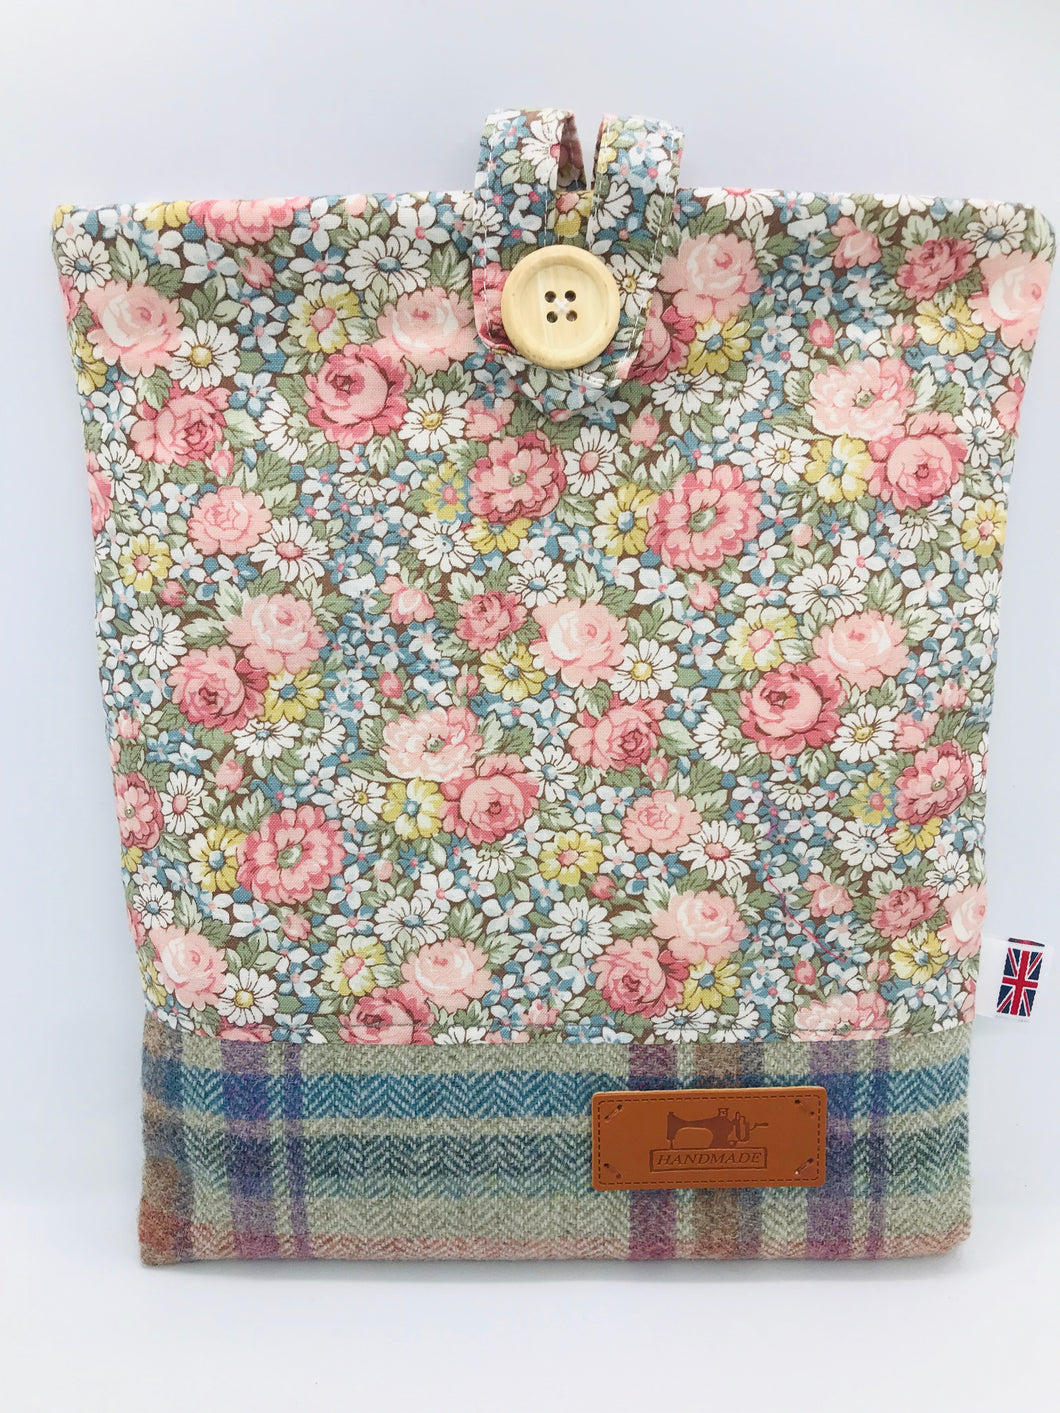 Floral Spring Pink & Sea Blue Book, IPad, Tablet, Kindle Cover British Tweed & Floral Cotton